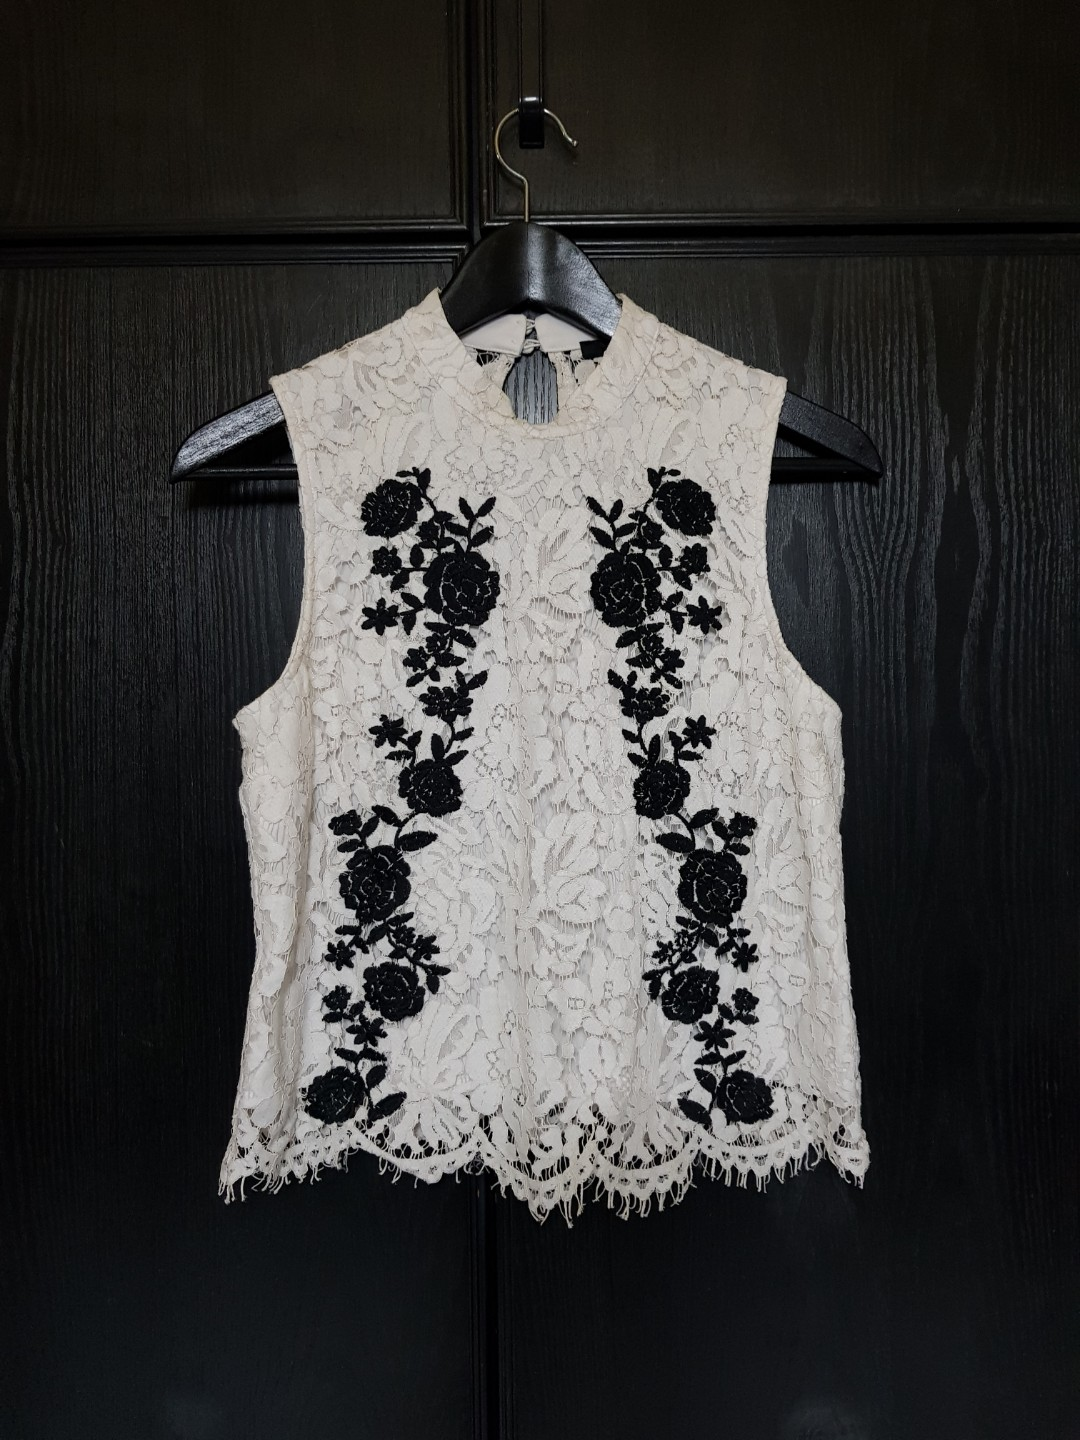 fcb780f43f085f PRELOVED 1 FOR 1  Forever 21 Lace Sleeveless Top with Floral ...